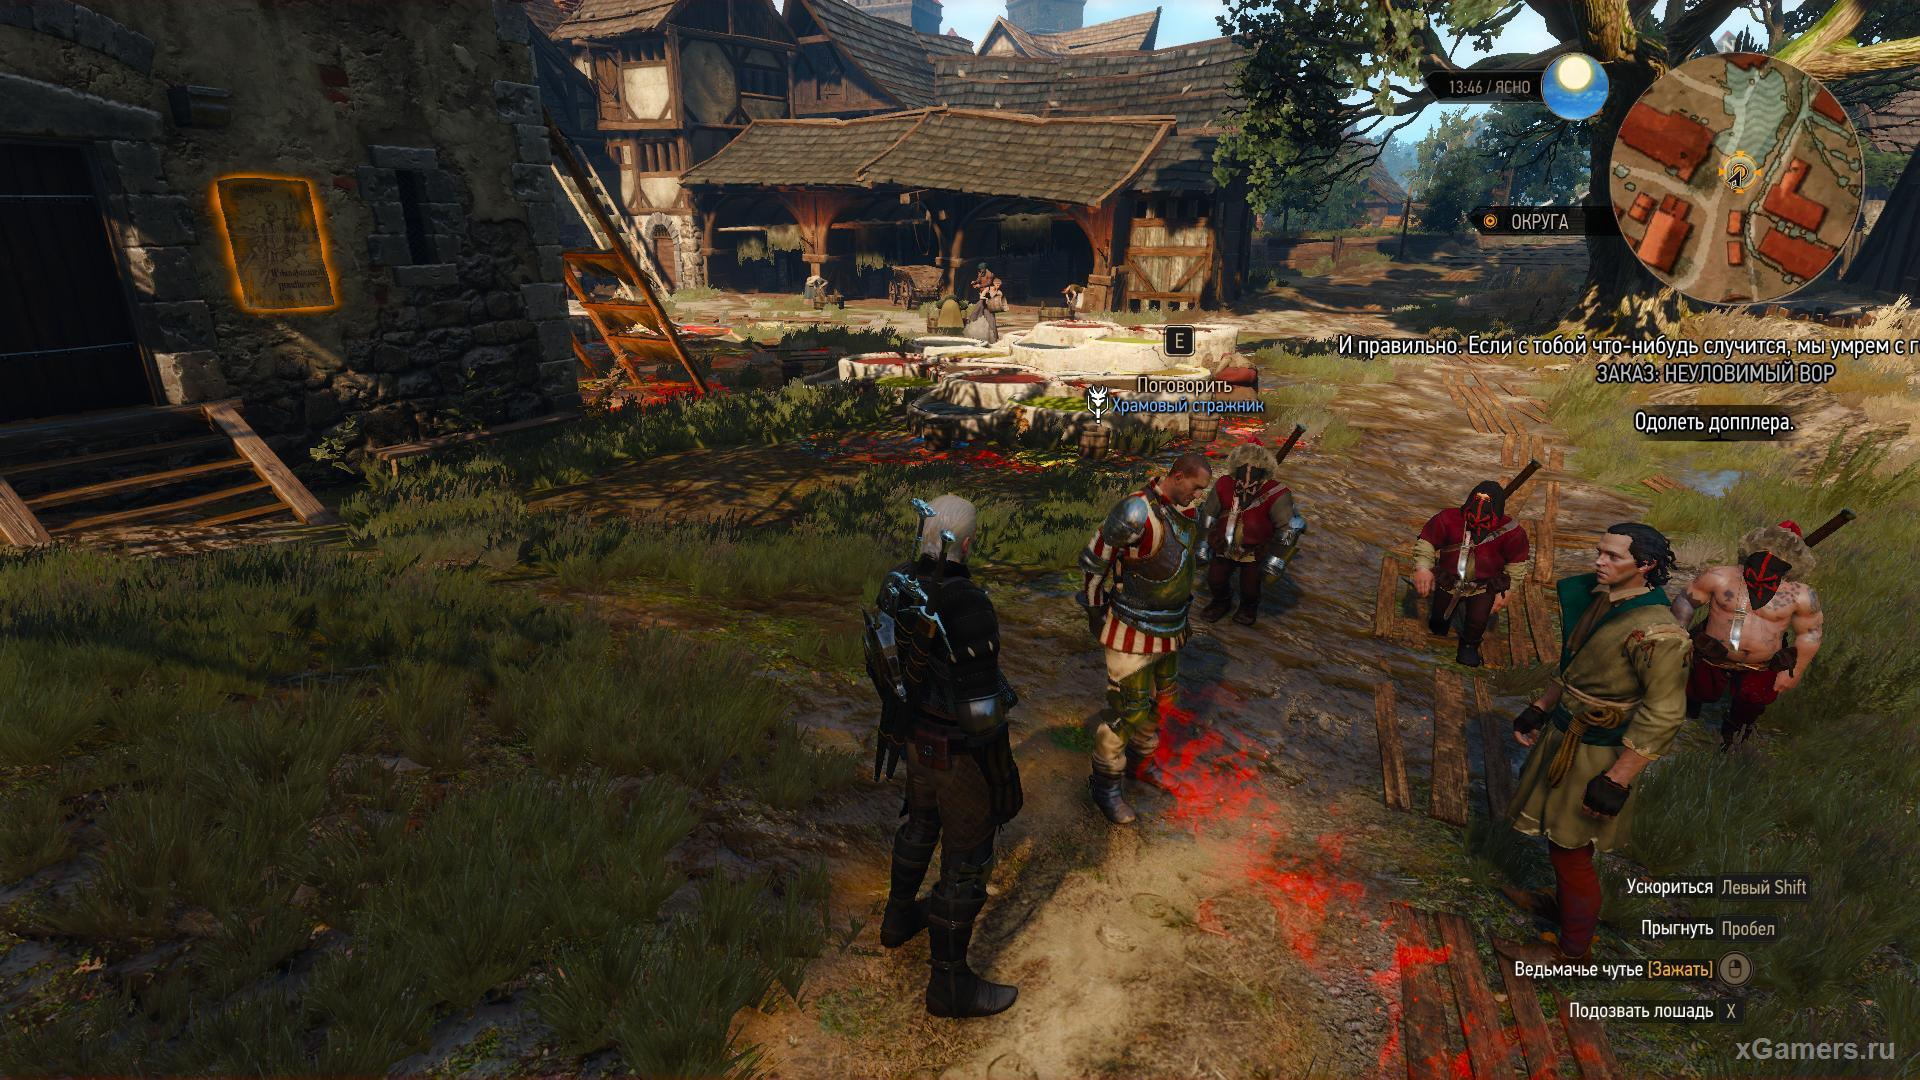 An Elusive Thief The Witcher 3 - Doppler Search